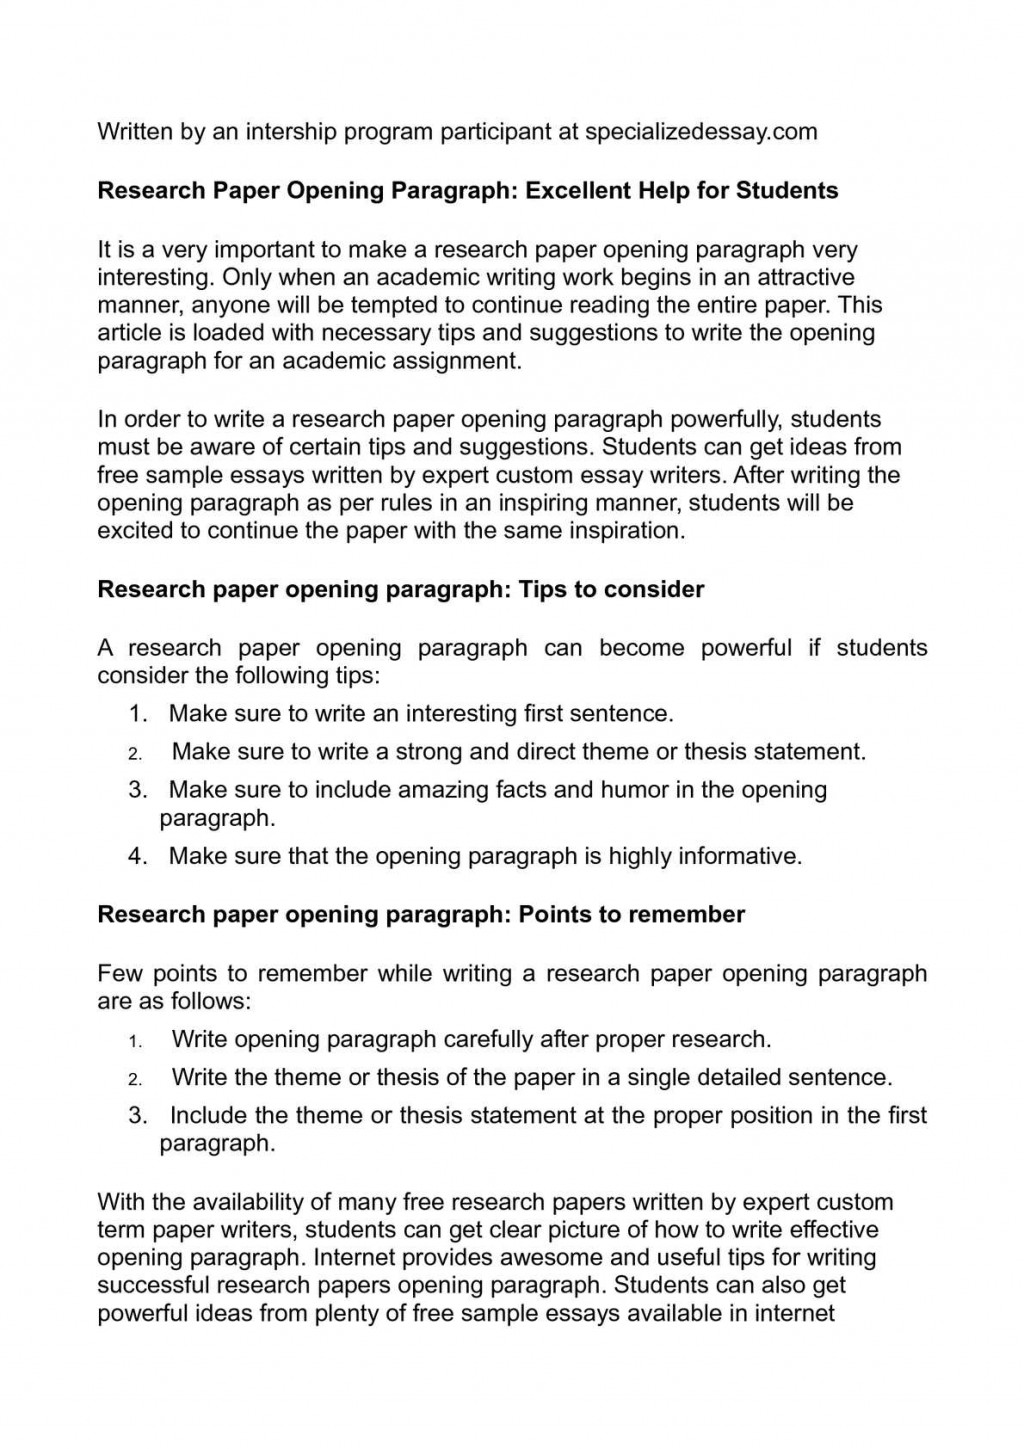 005 Research Paper How To Start Paragraph Stirring A New In Your Introduction On An Opening Large